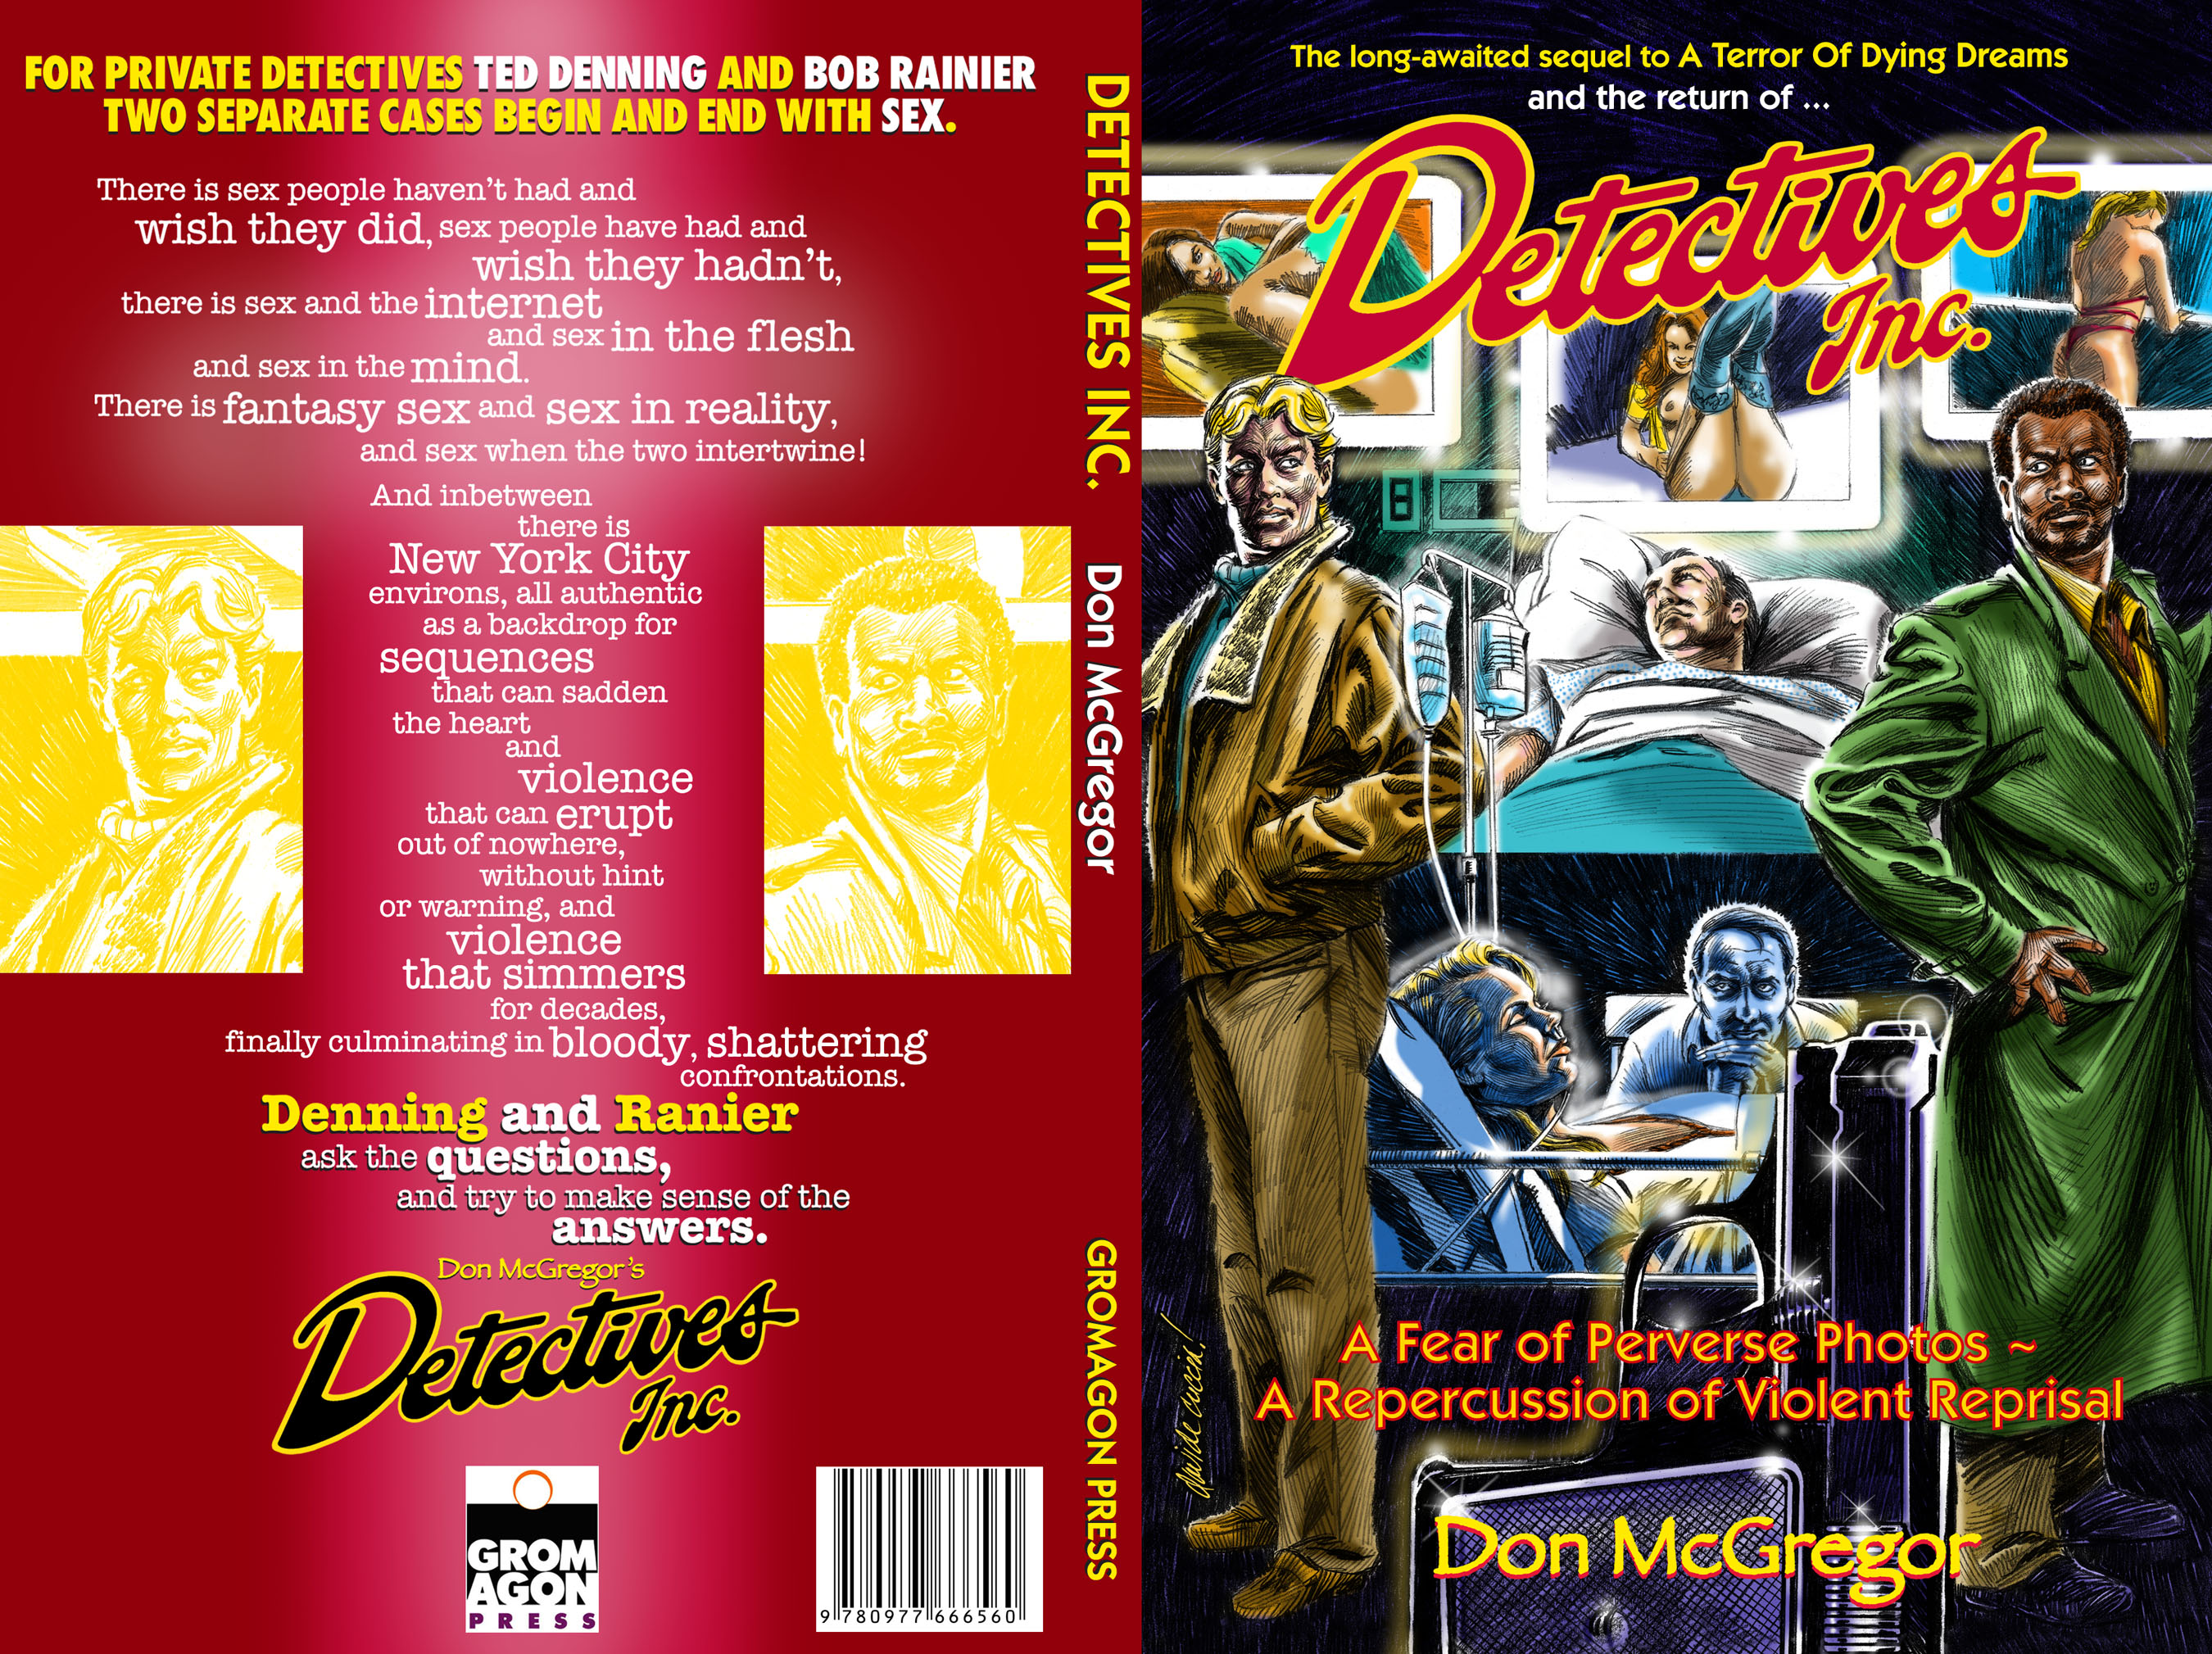 Detectives Inc Cover